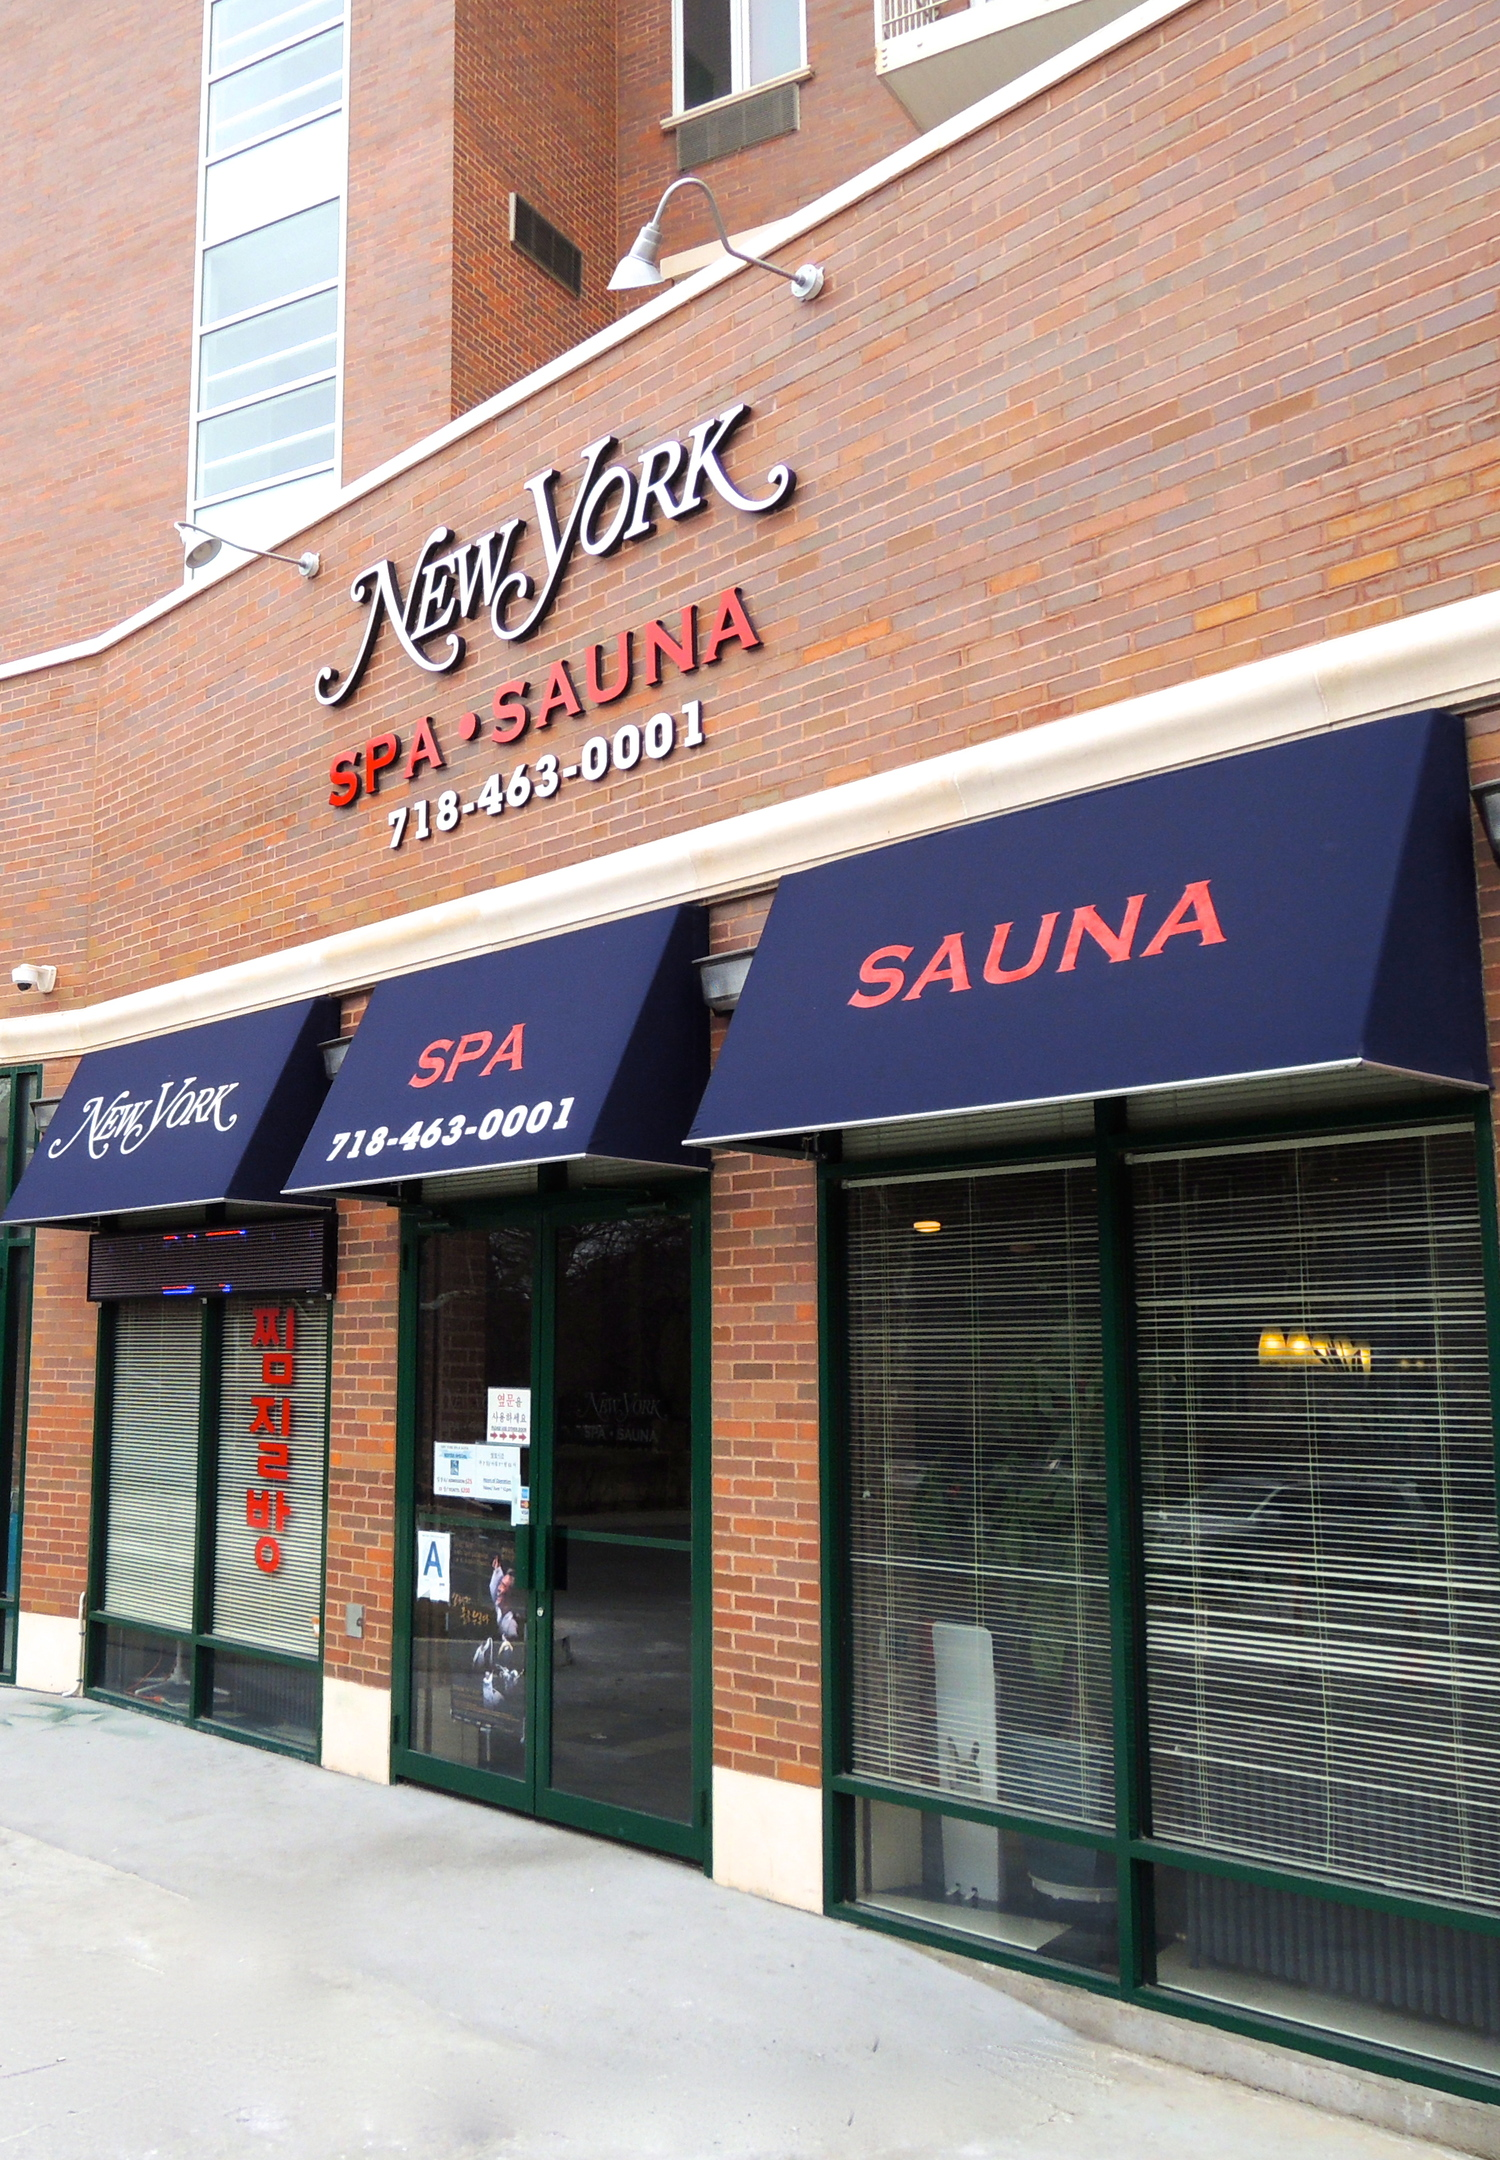 New York Spa & Sauna